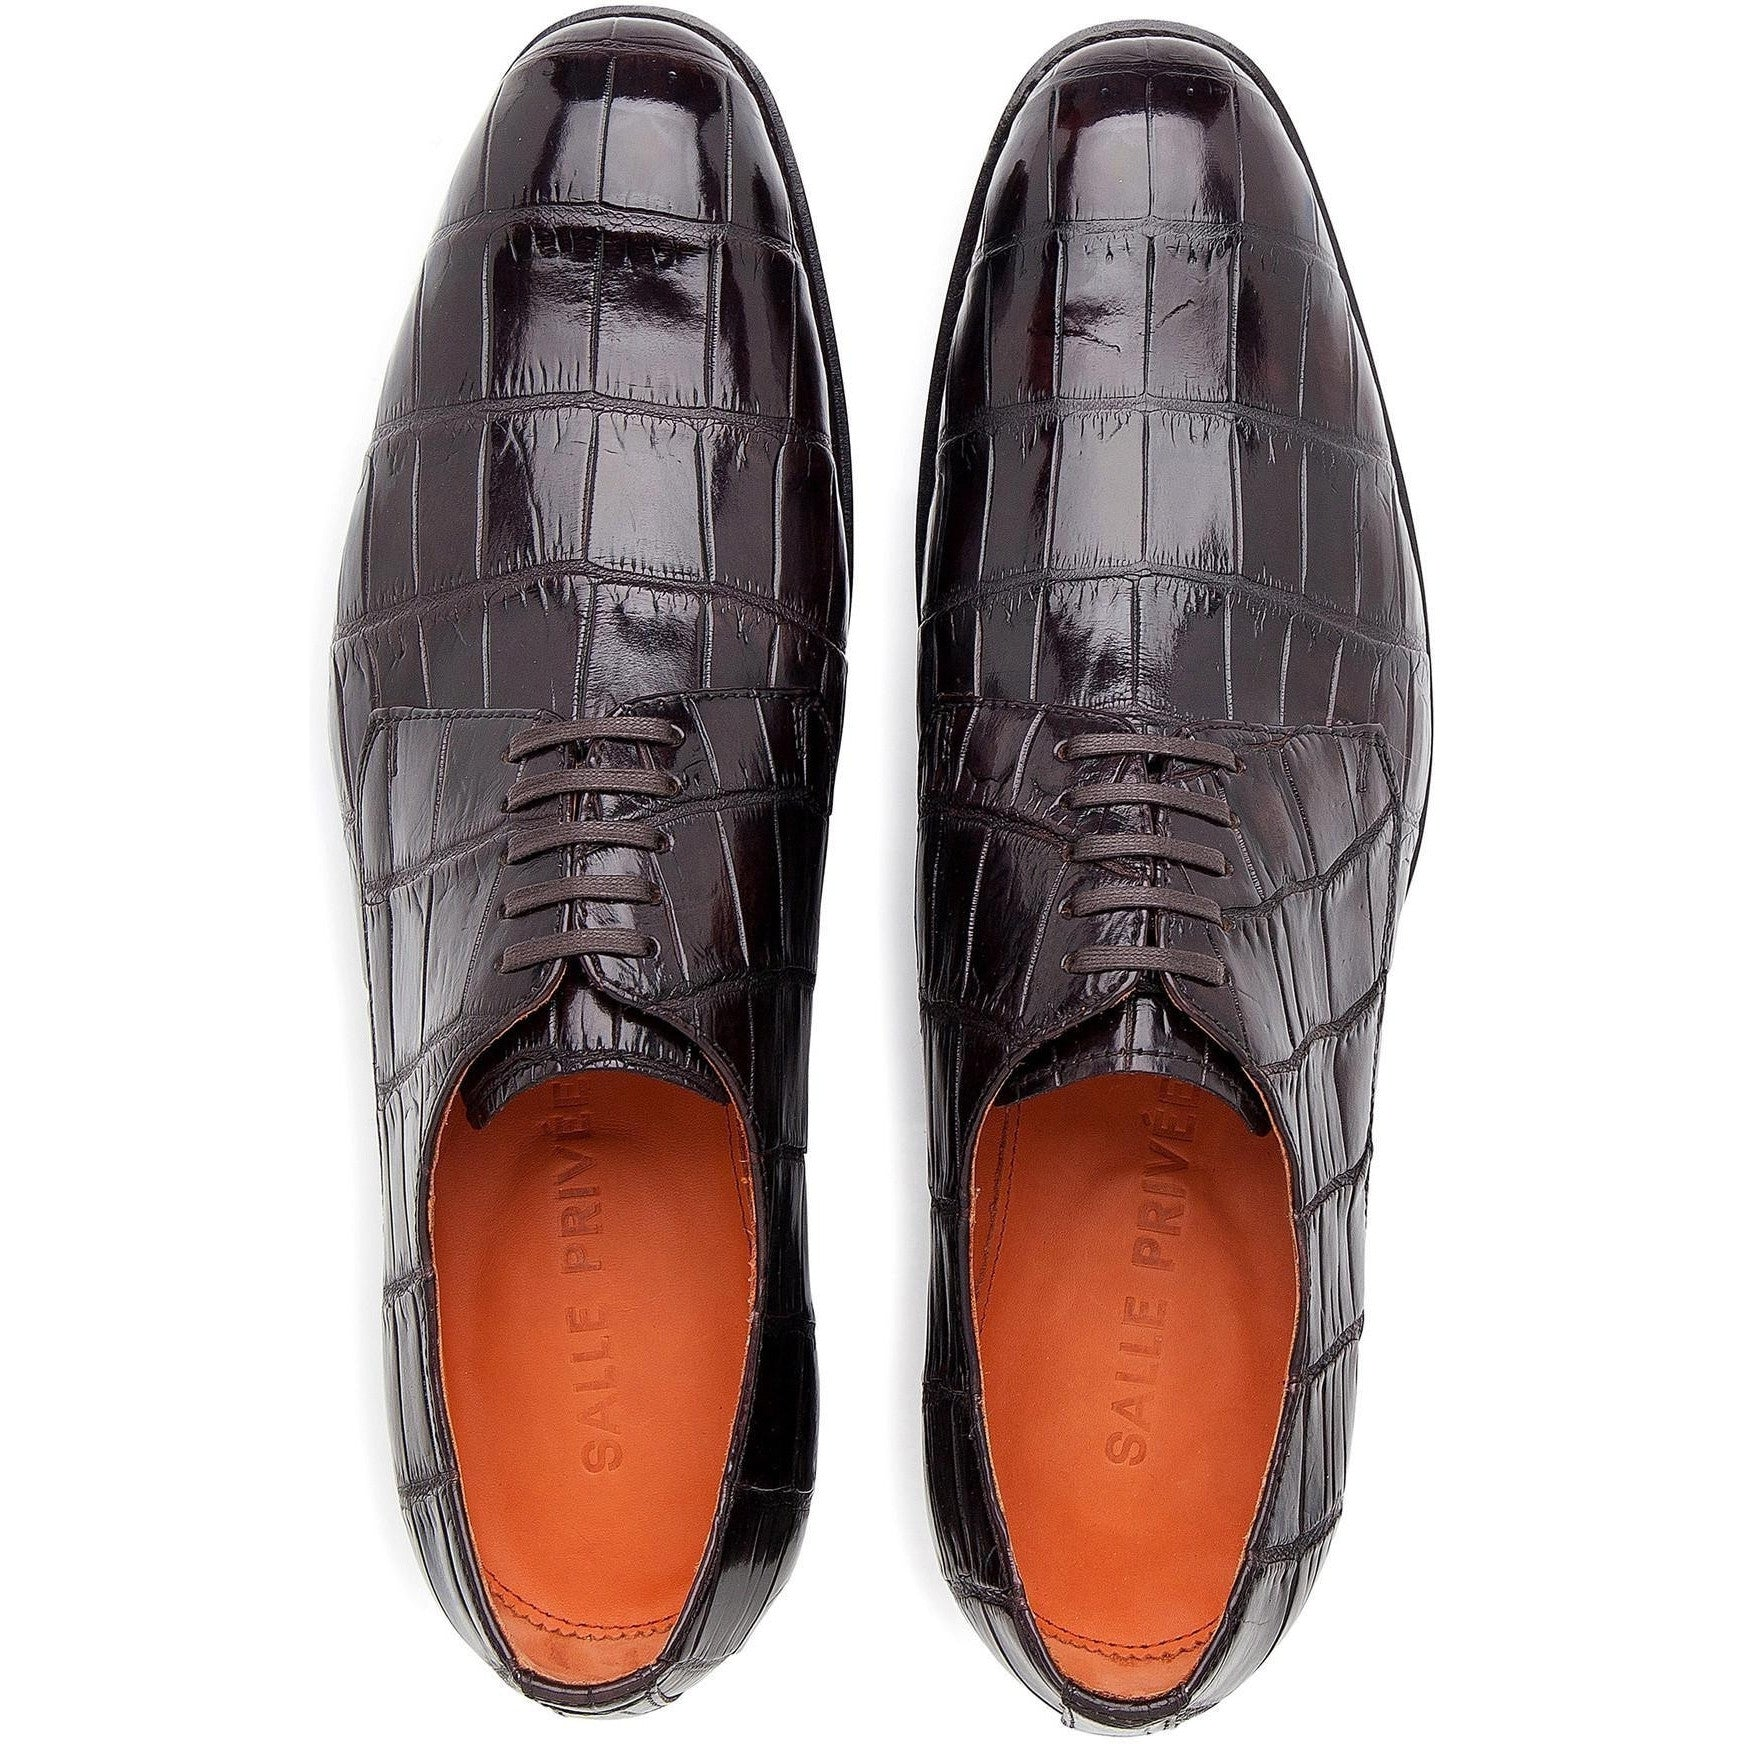 LOGAN crocodile derby shoes-SALLE PRIVÉE